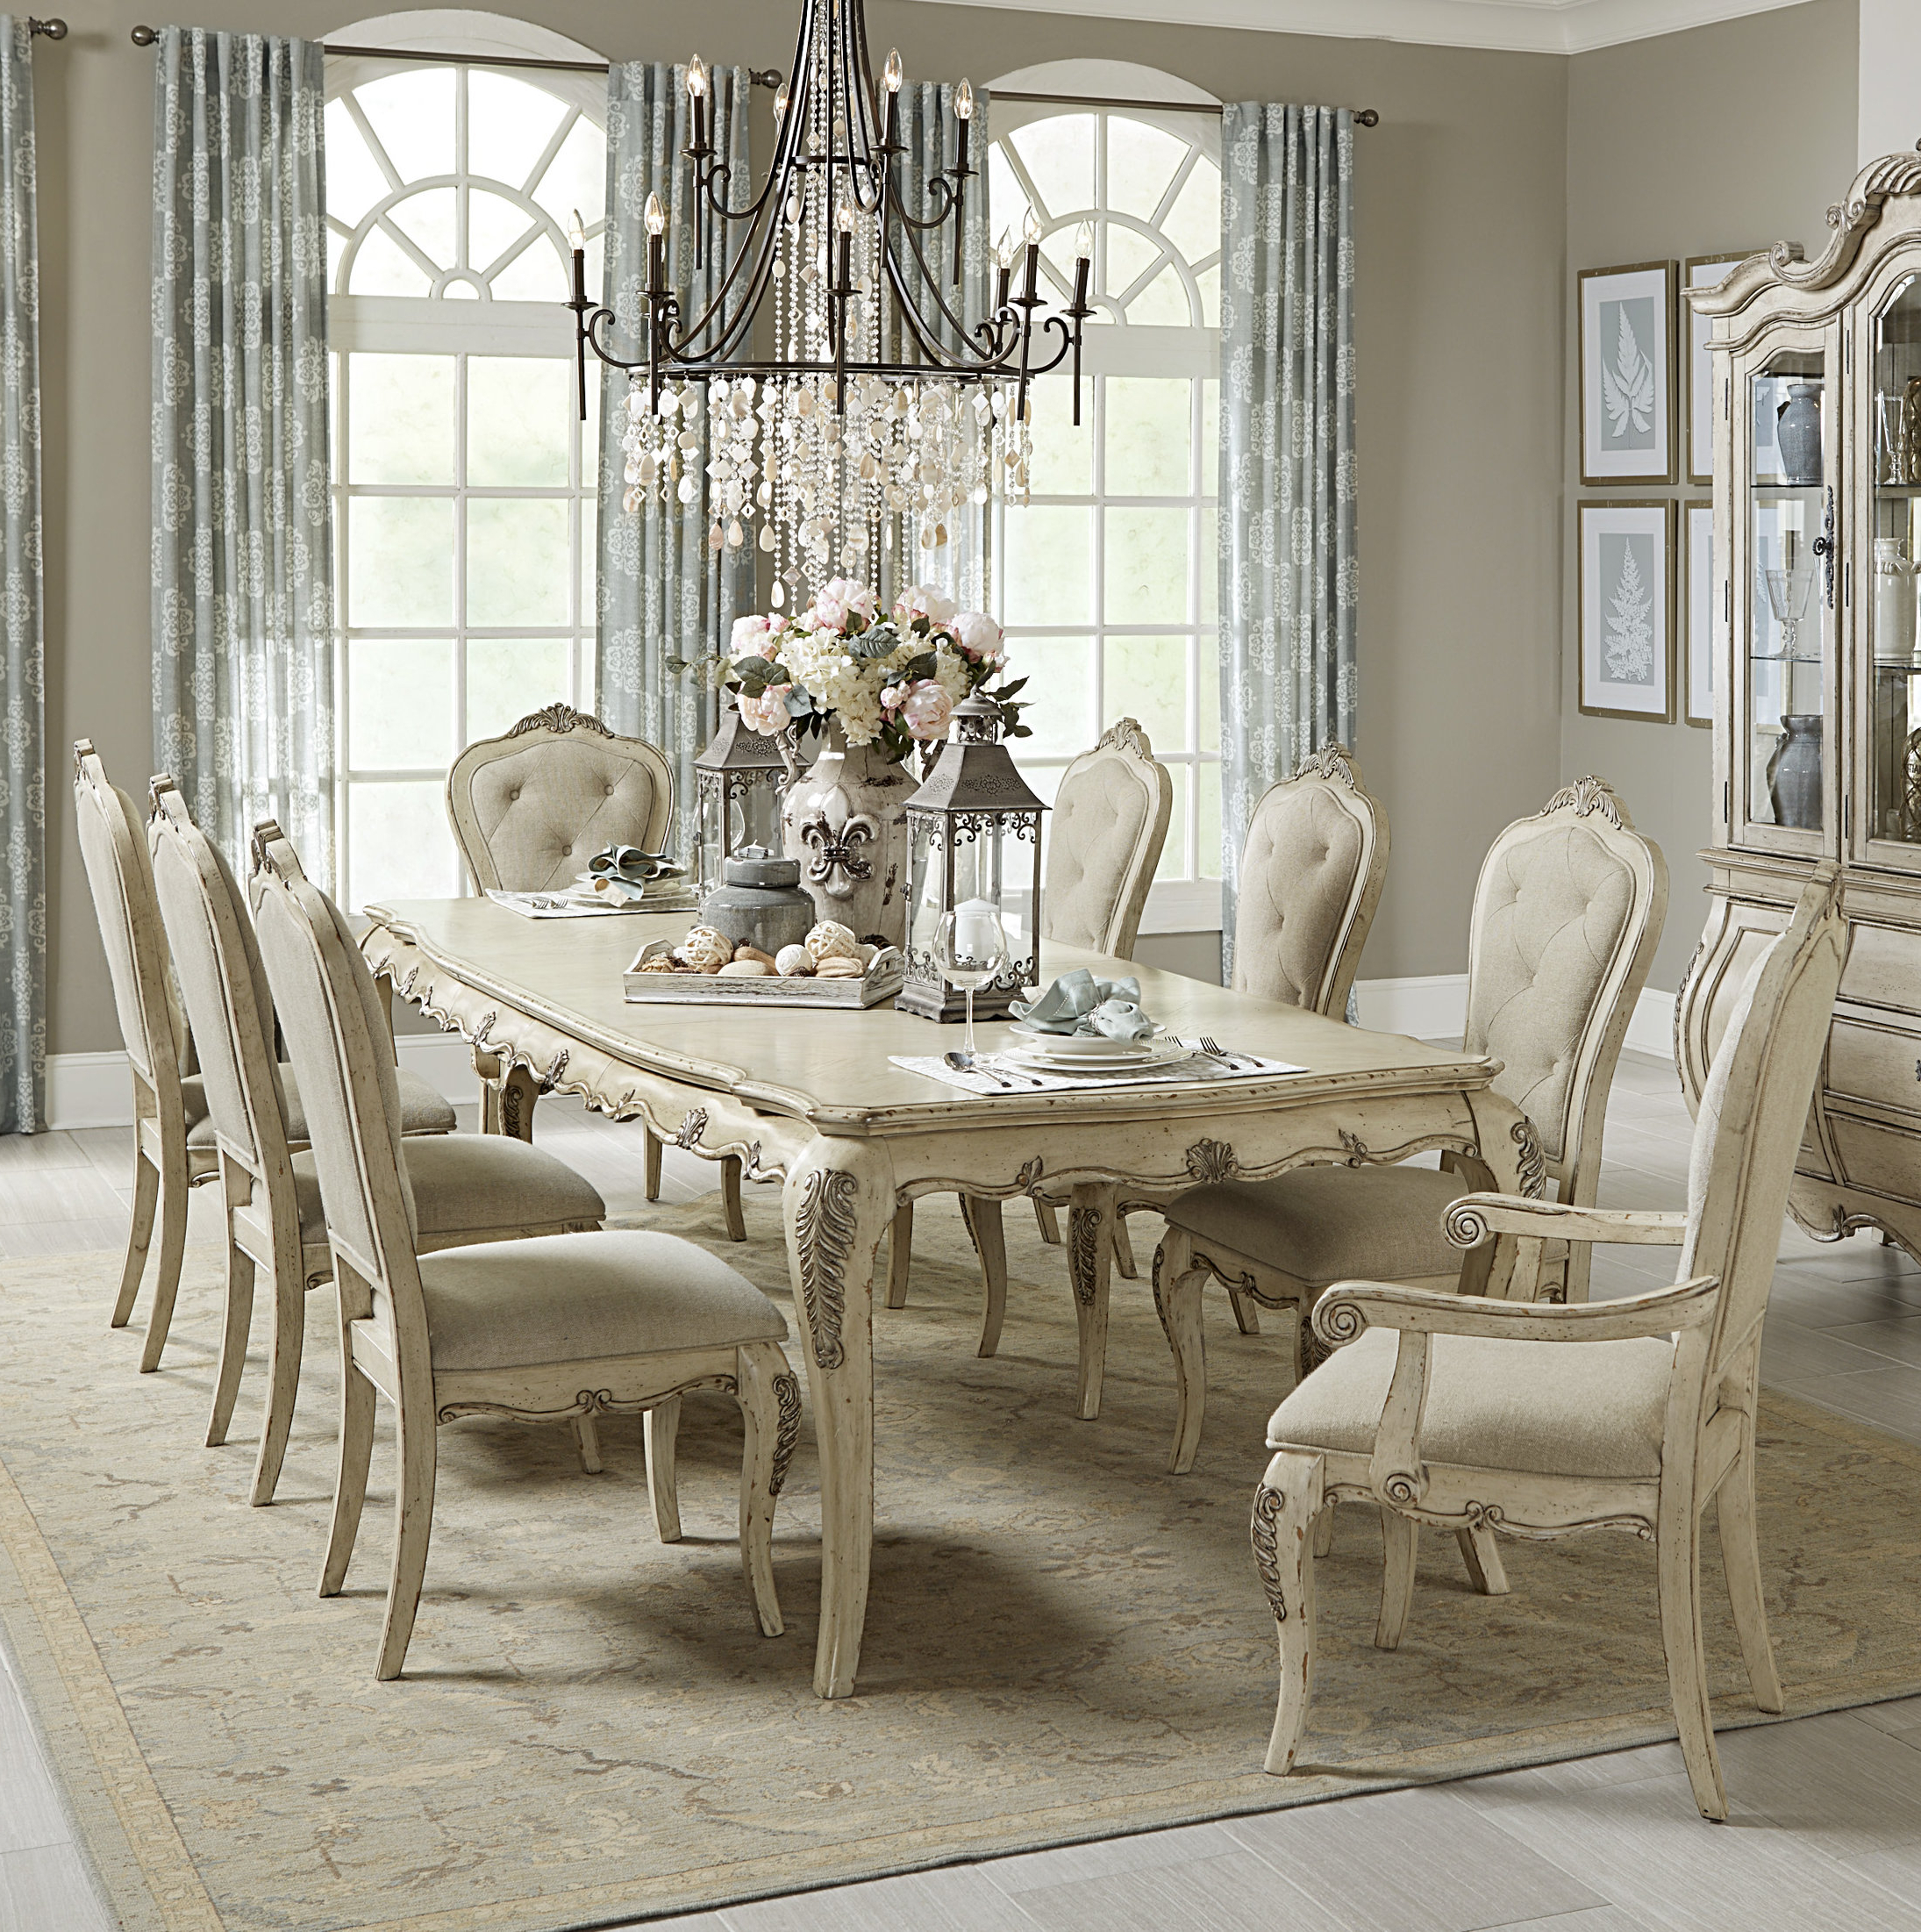 Wayfair Intended For Widely Used Mitzel 3 Piece Dining Sets (View 3 of 25)